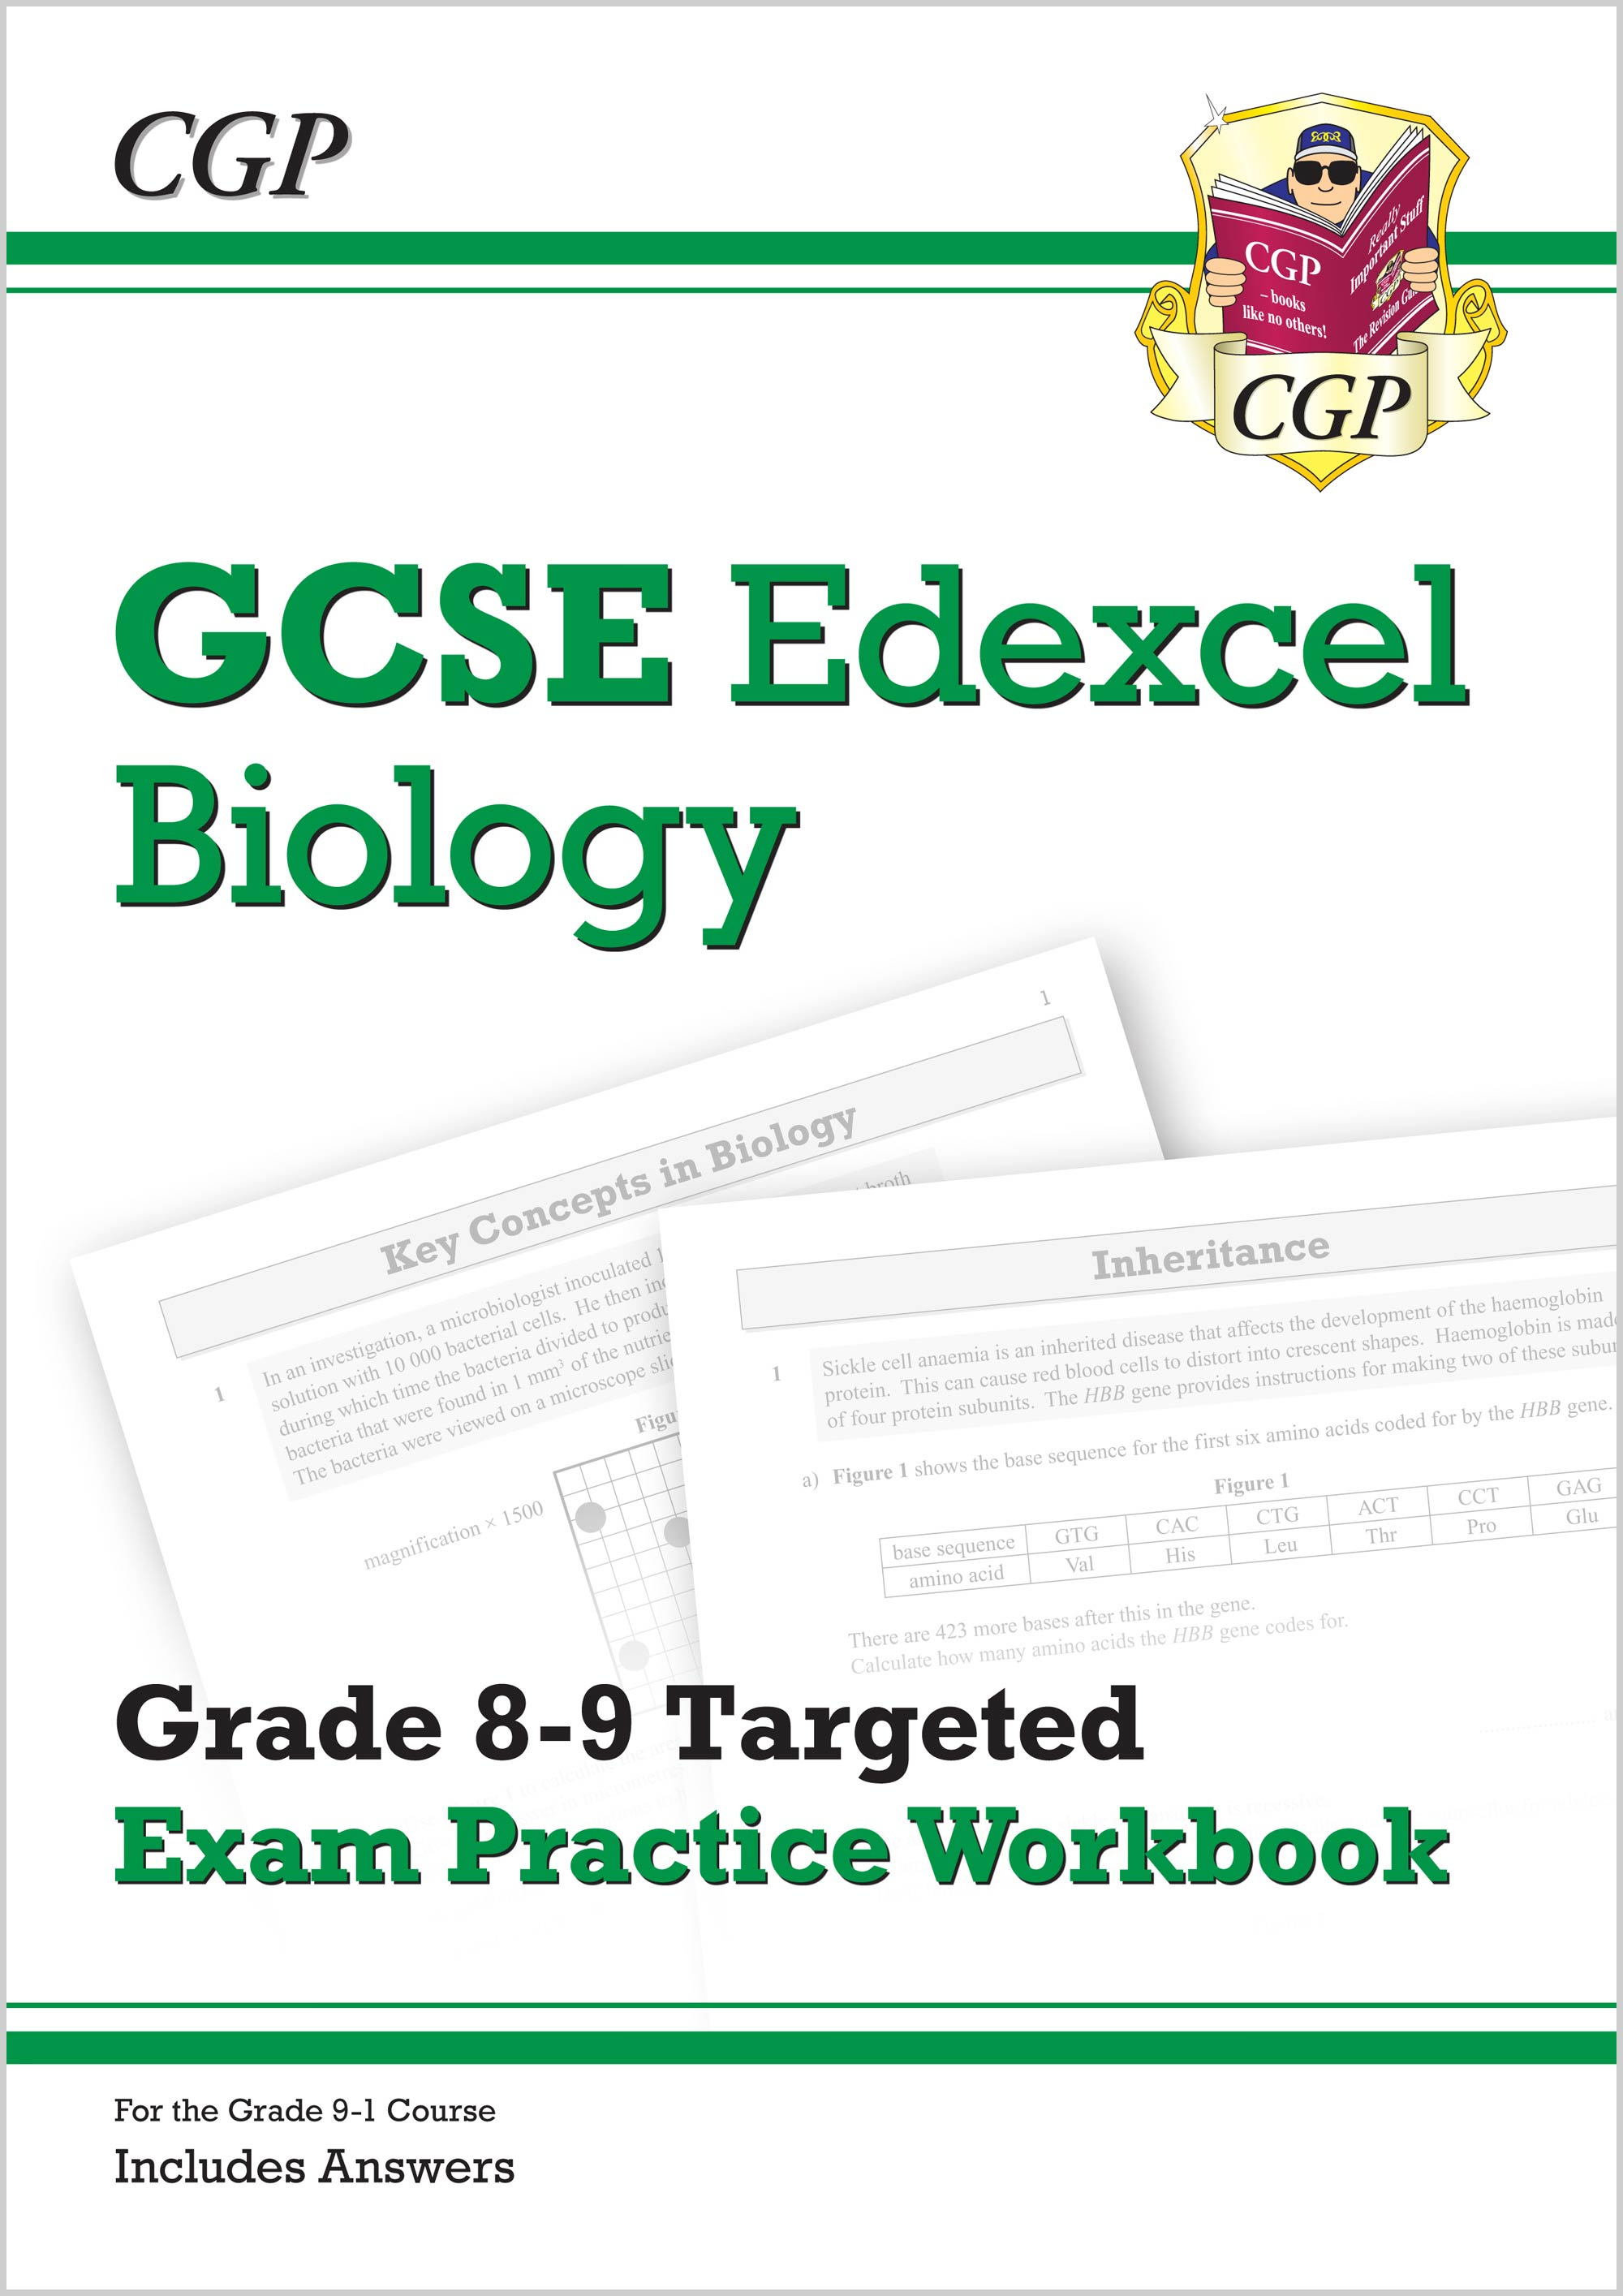 BE9Q41 - GCSE Biology Edexcel Grade 8-9 Targeted Exam Practice Workbook (includes Answers)